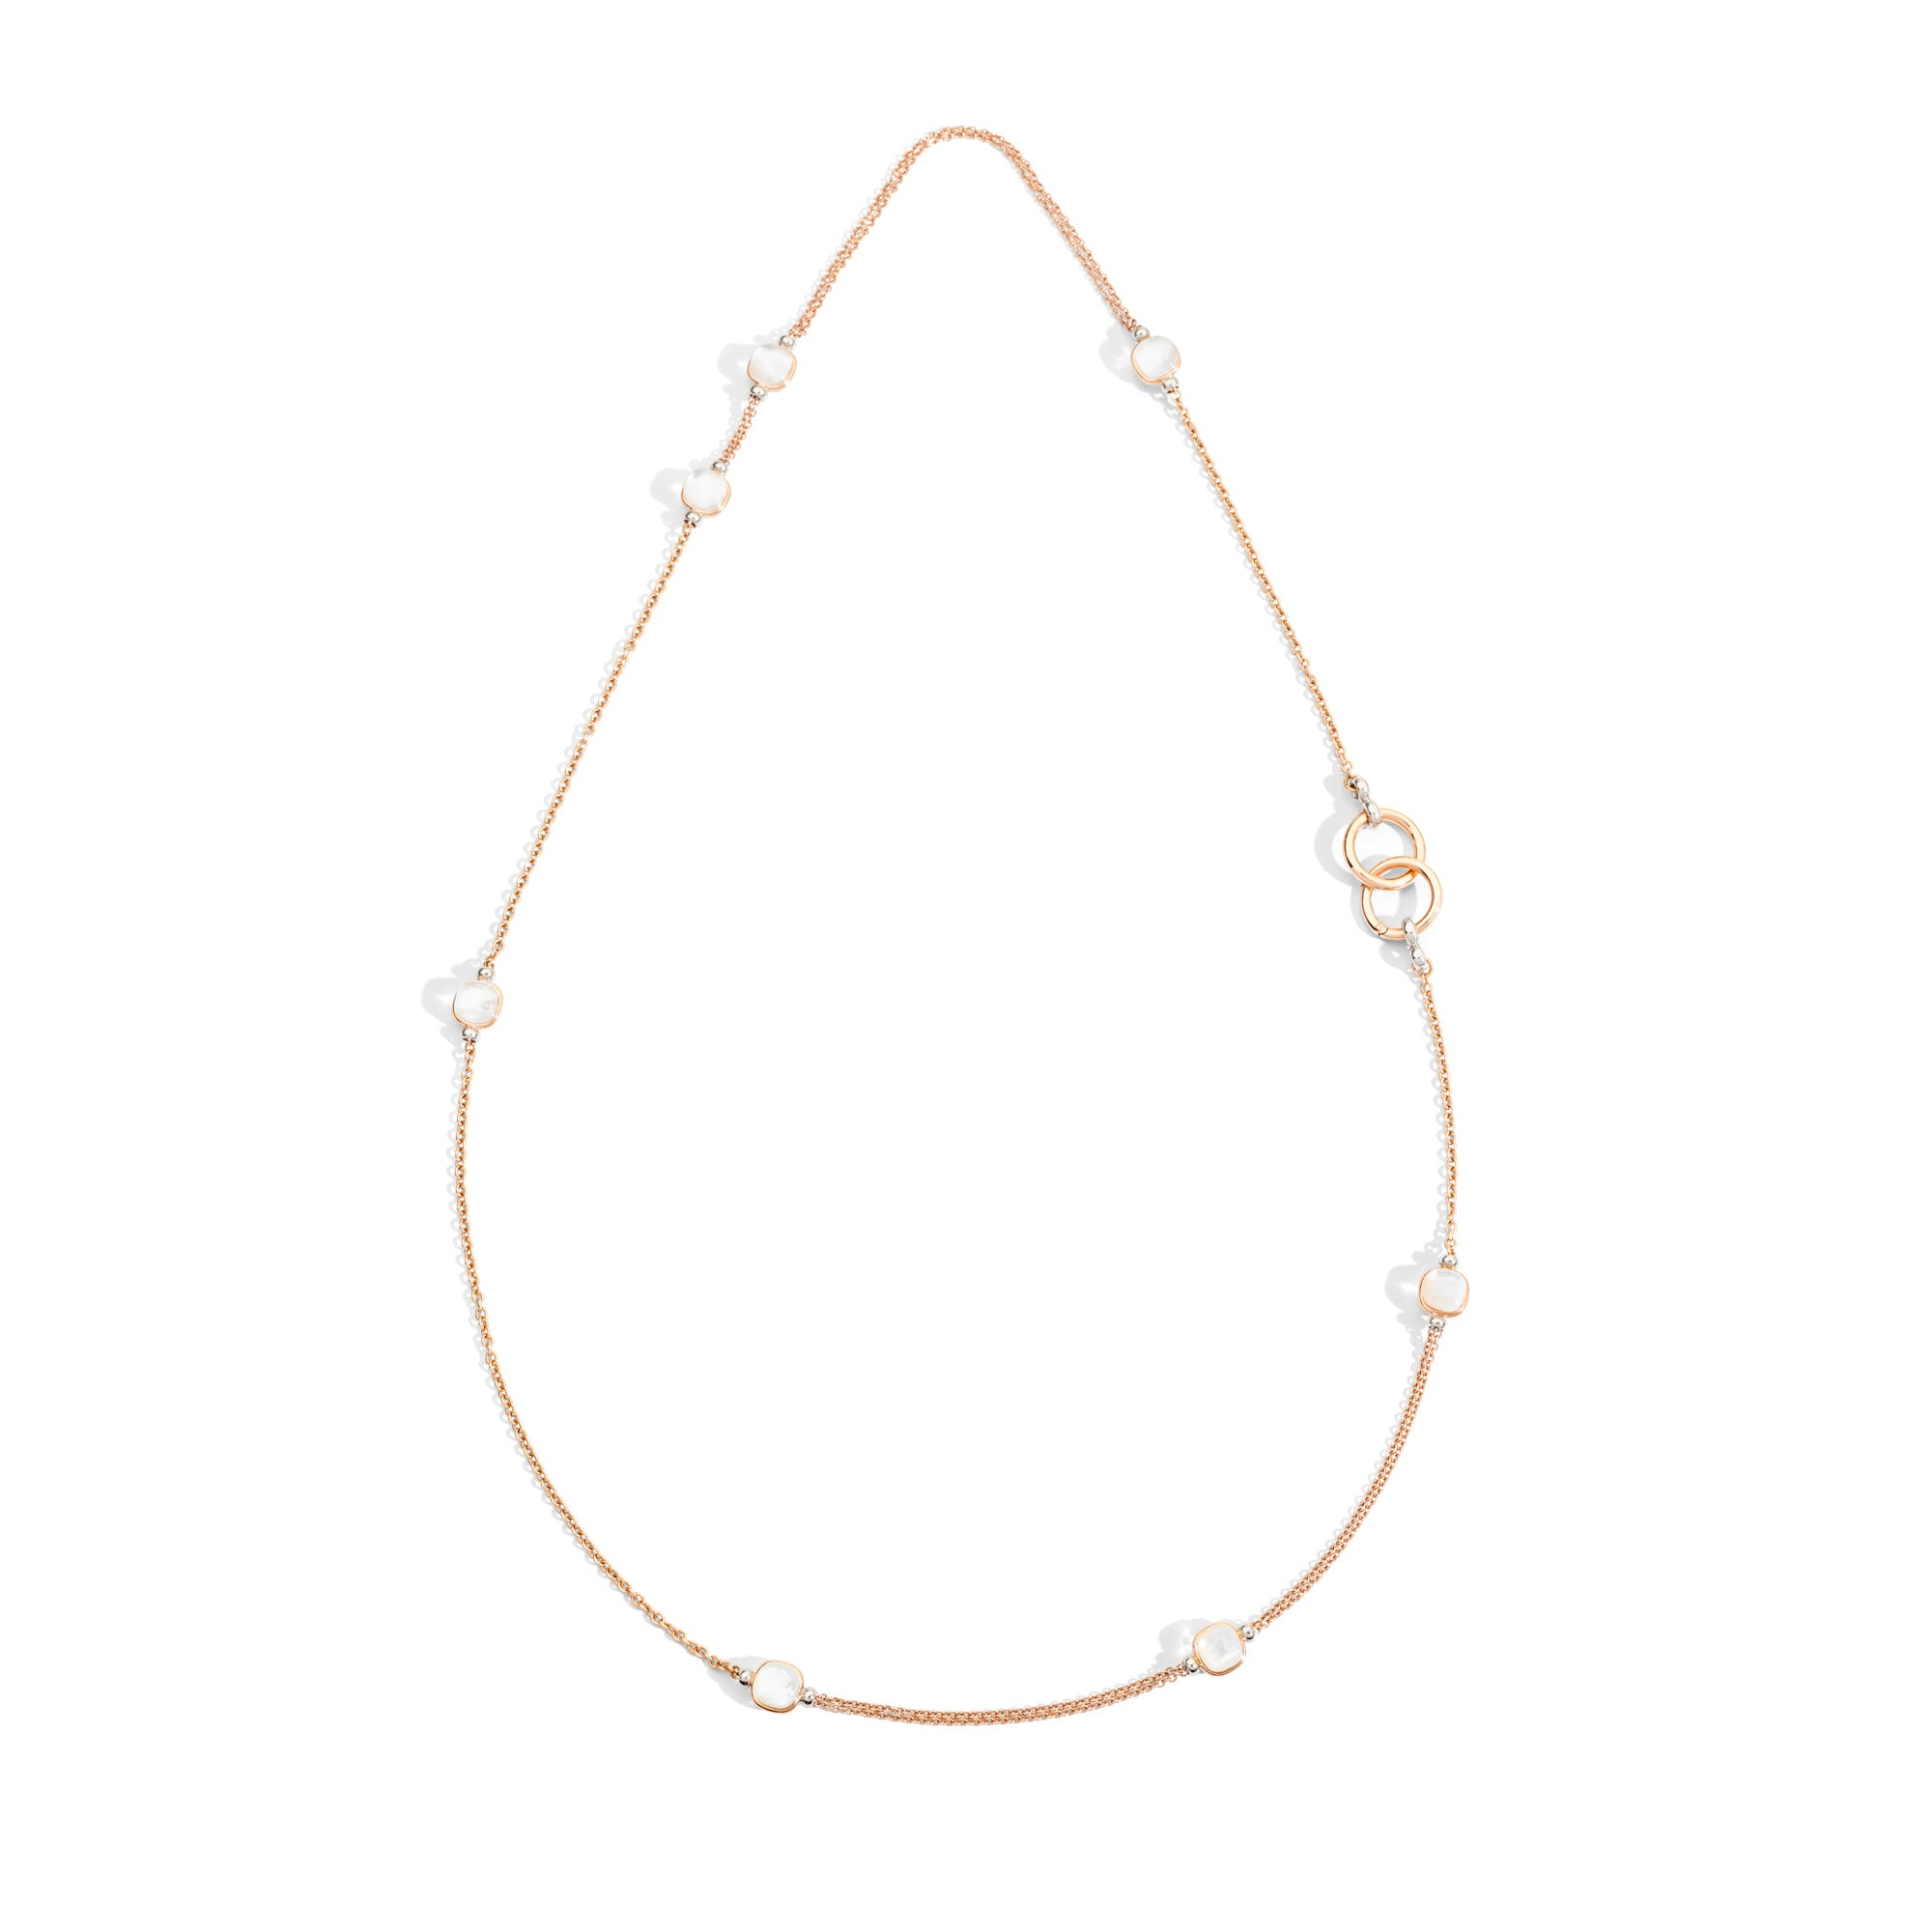 Nudo Necklace in 18k Rose and White Gold with Mother of Pearl and White Topaz - Orsini Jewellers NZ